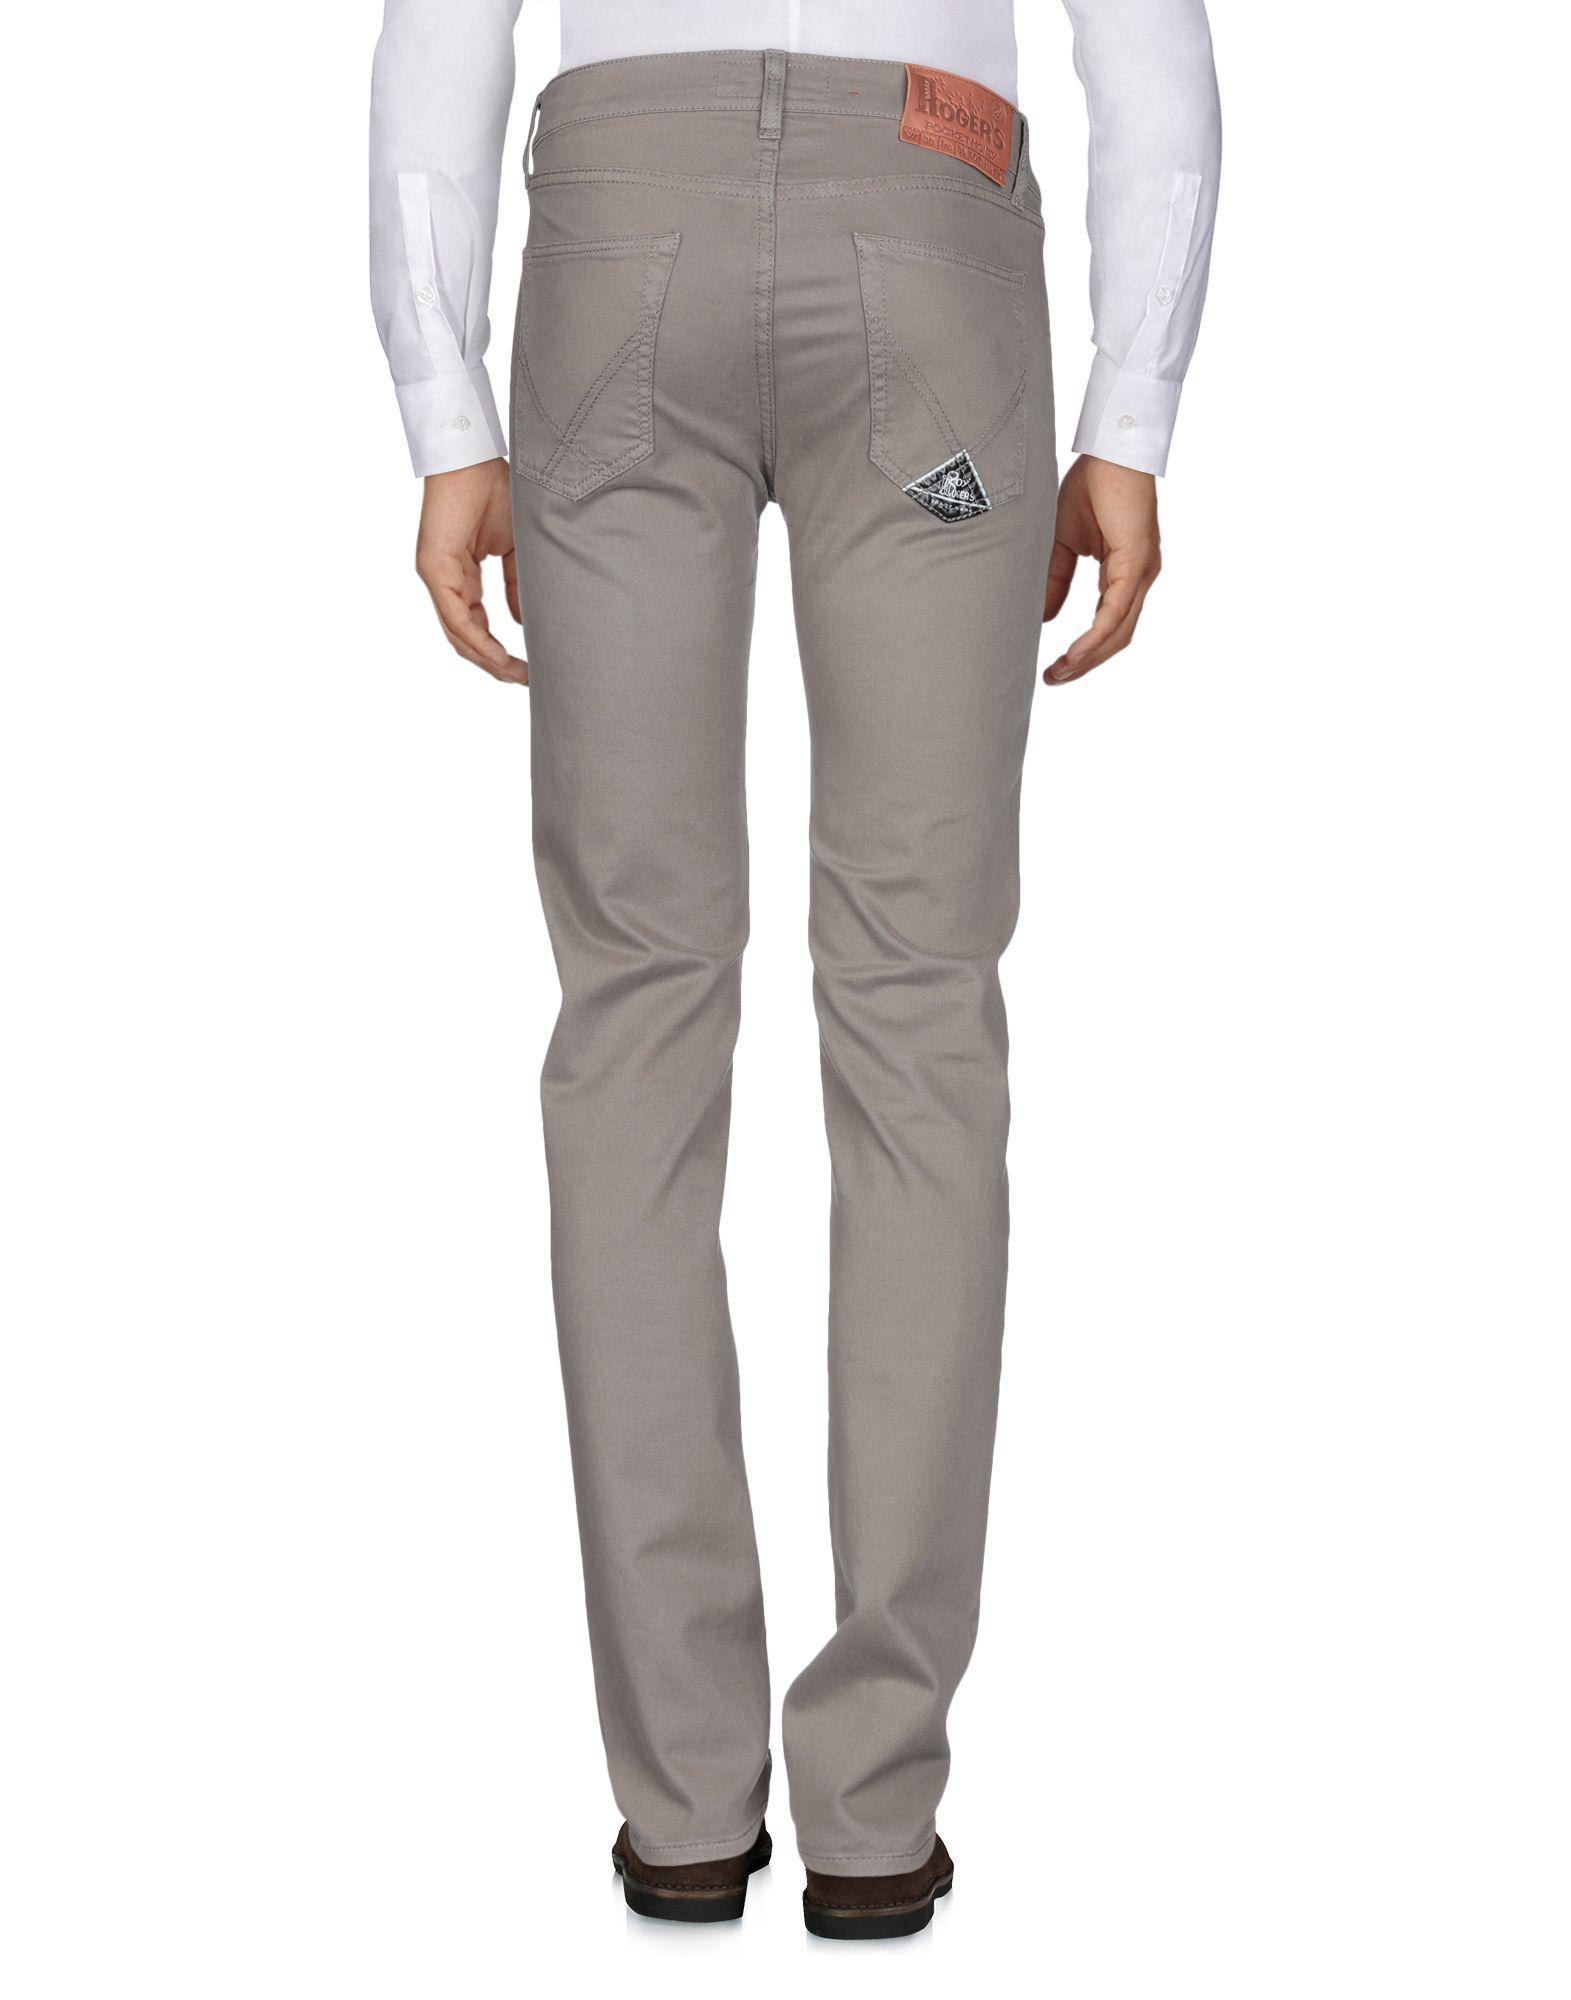 Roy Rogers Leather Casual Trouser in Khaki (Grey) for Men